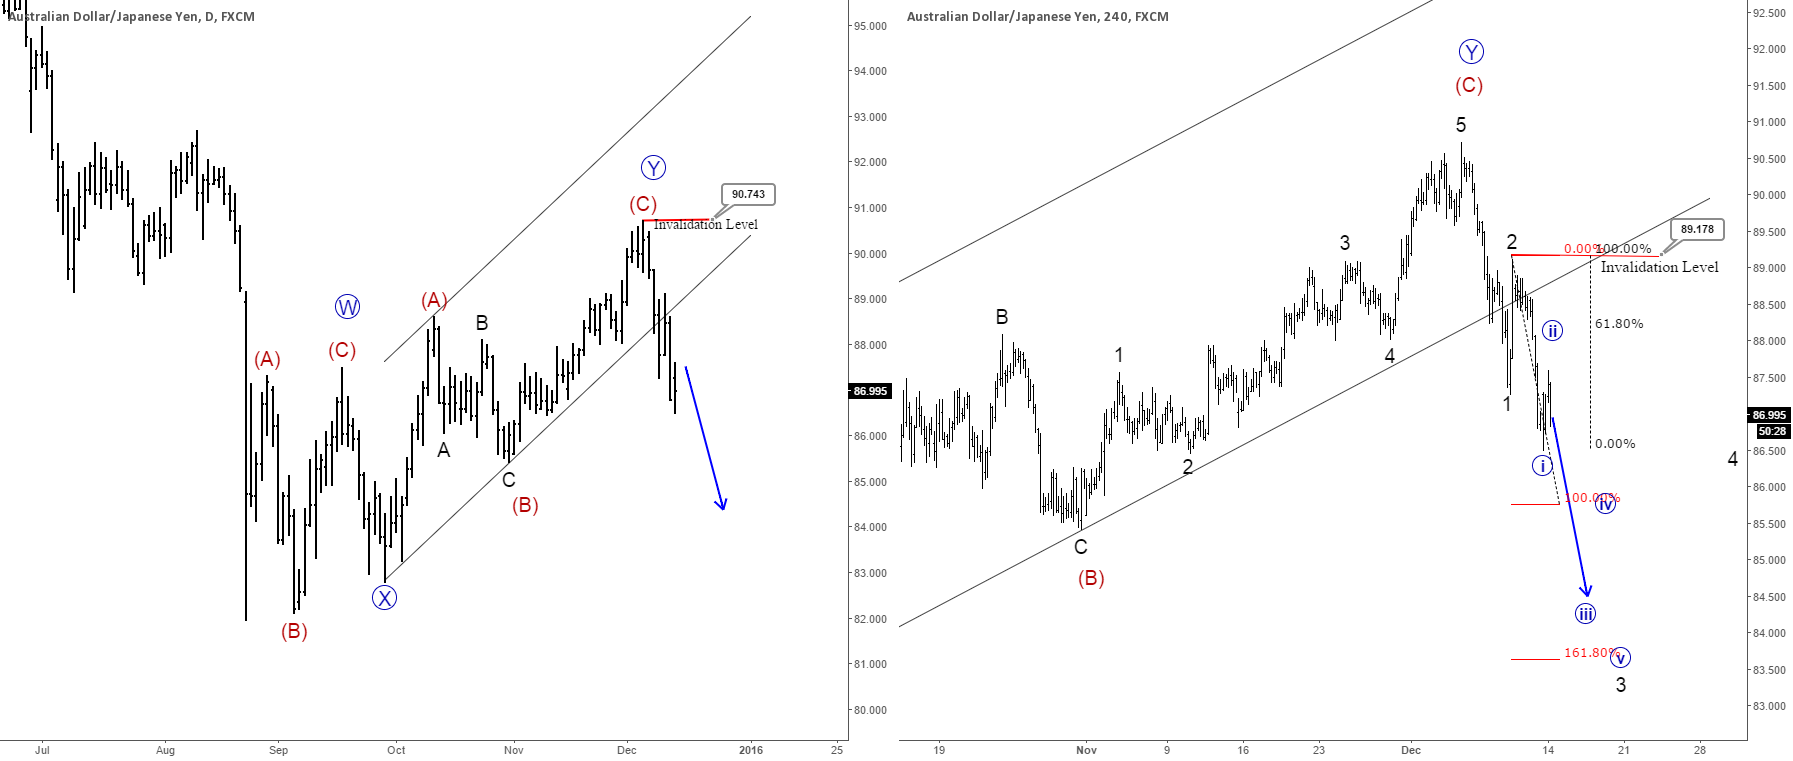 AUDJPY : More Weakness Could Follow